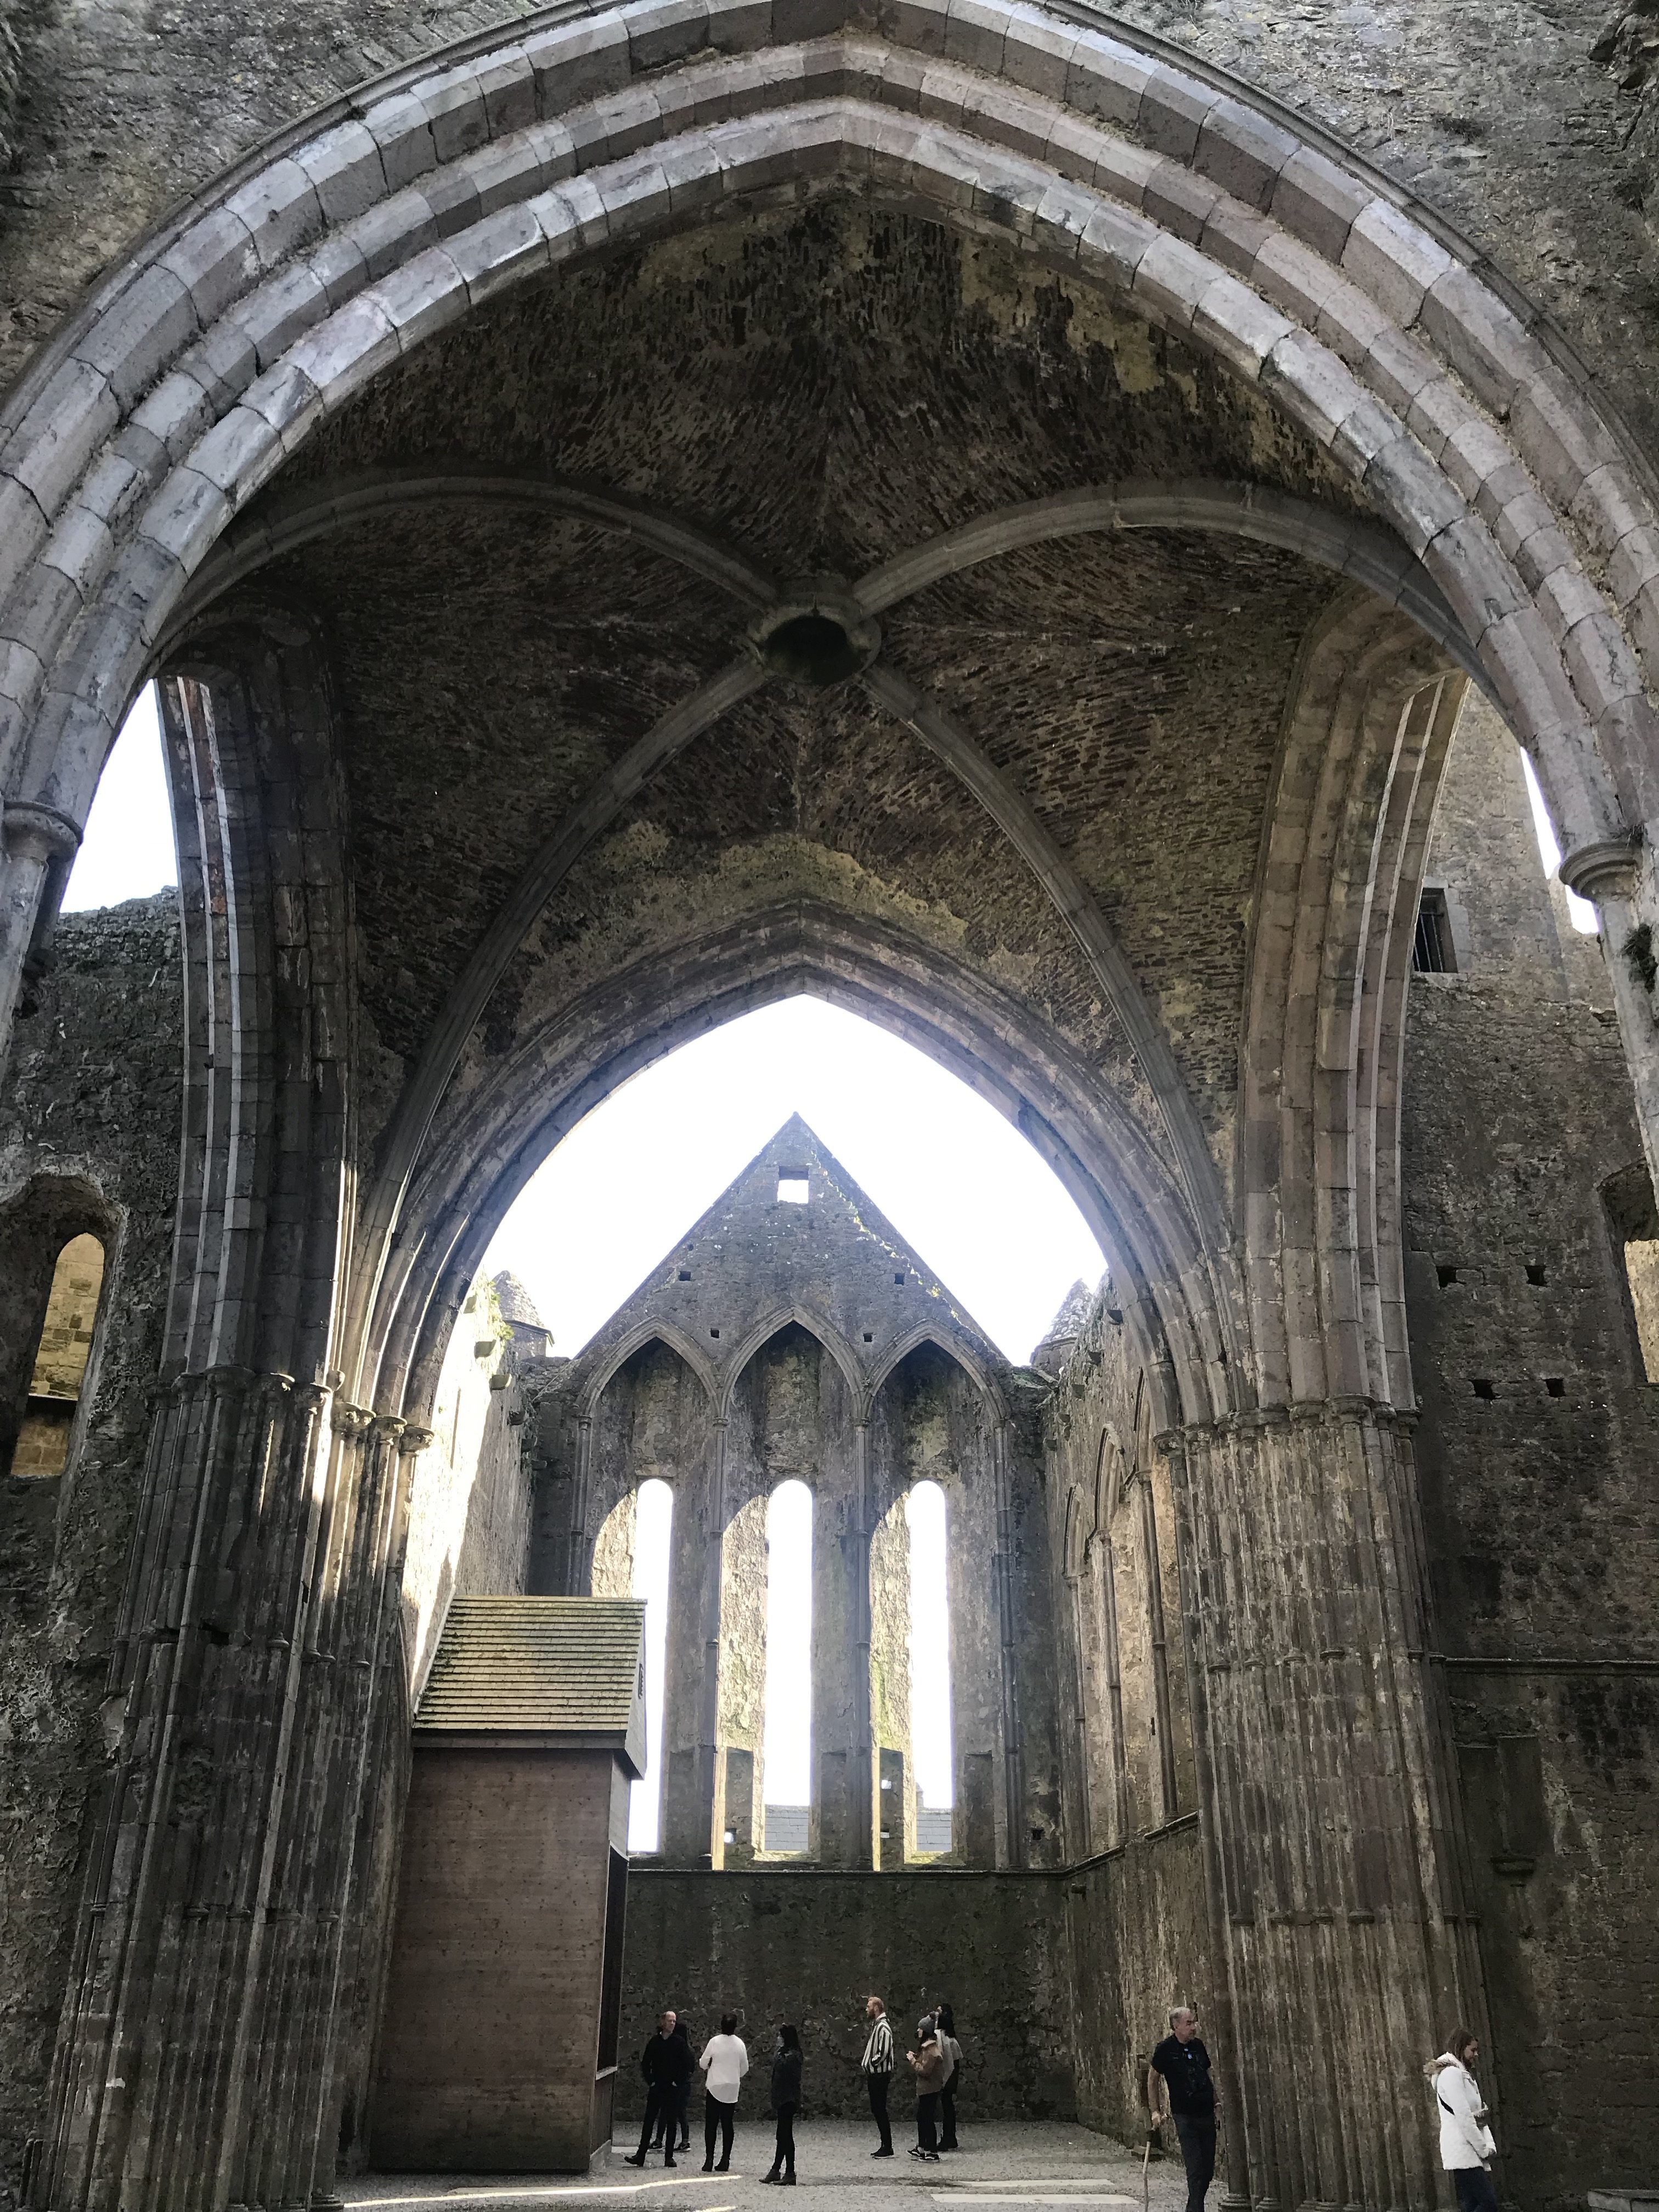 Ruins of Avery large ancient gothic cathedral